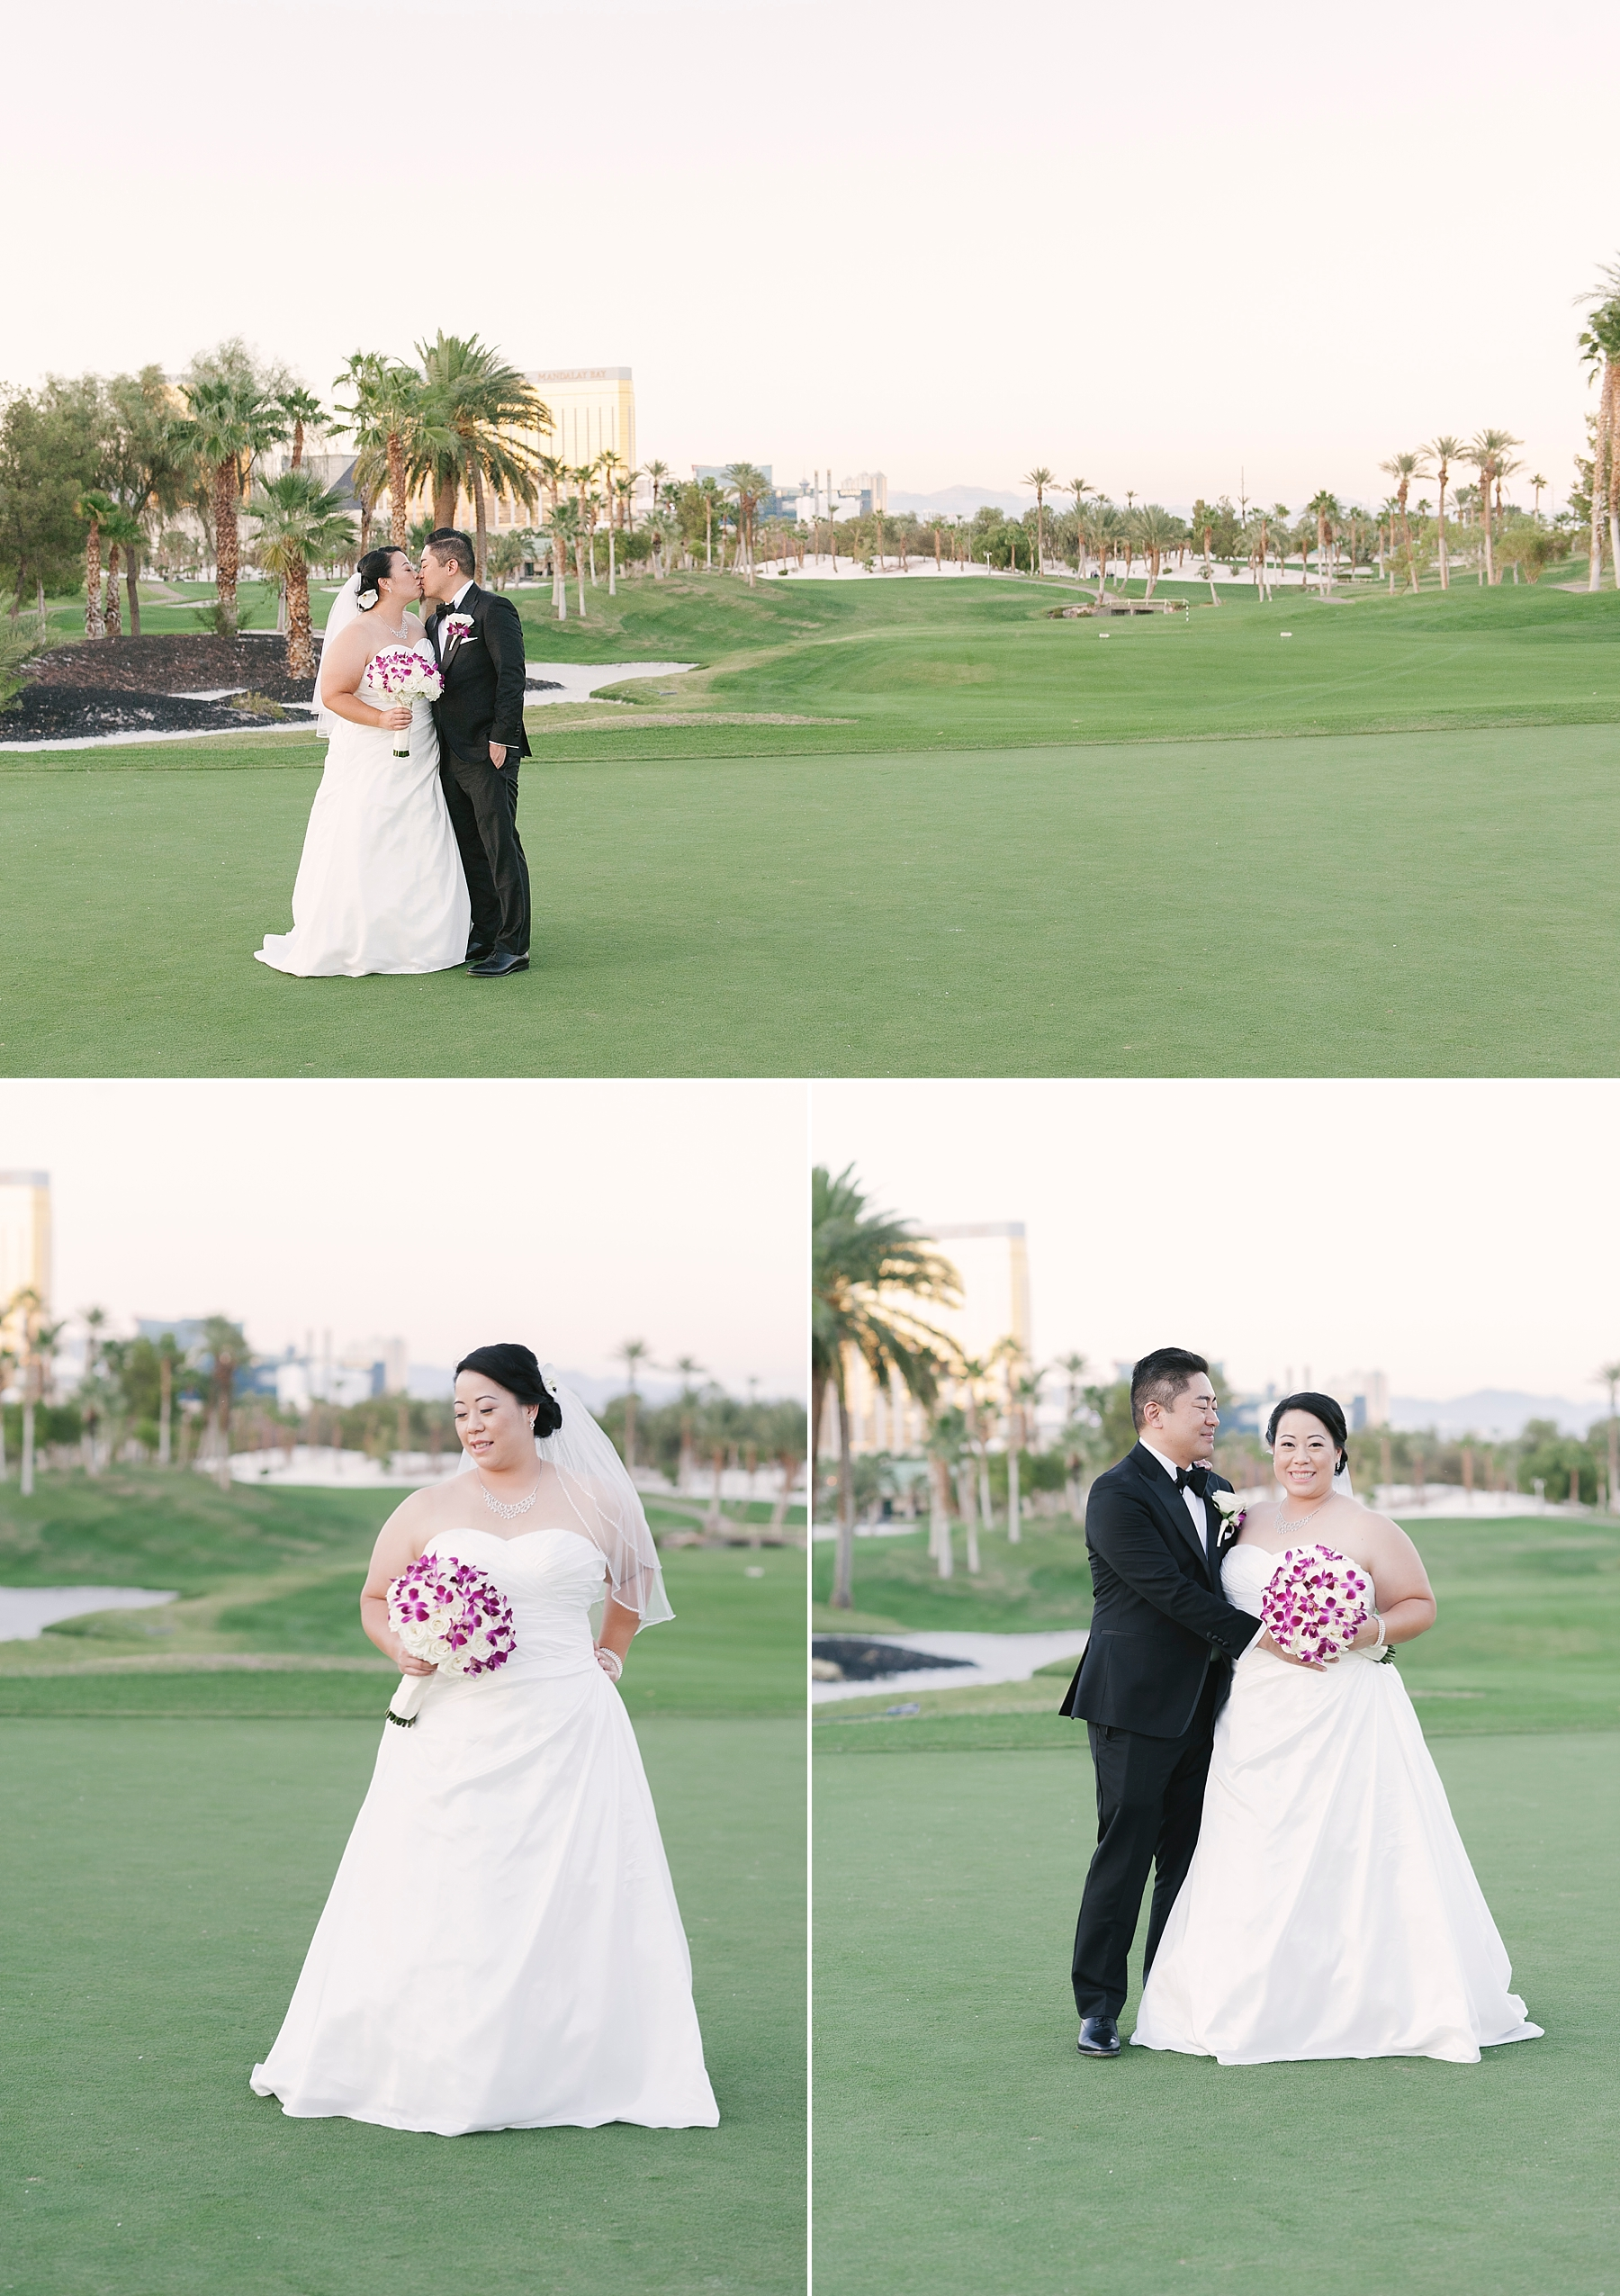 Cili_Golf_Club_Las_vegas_wedding_photography-27.jpg